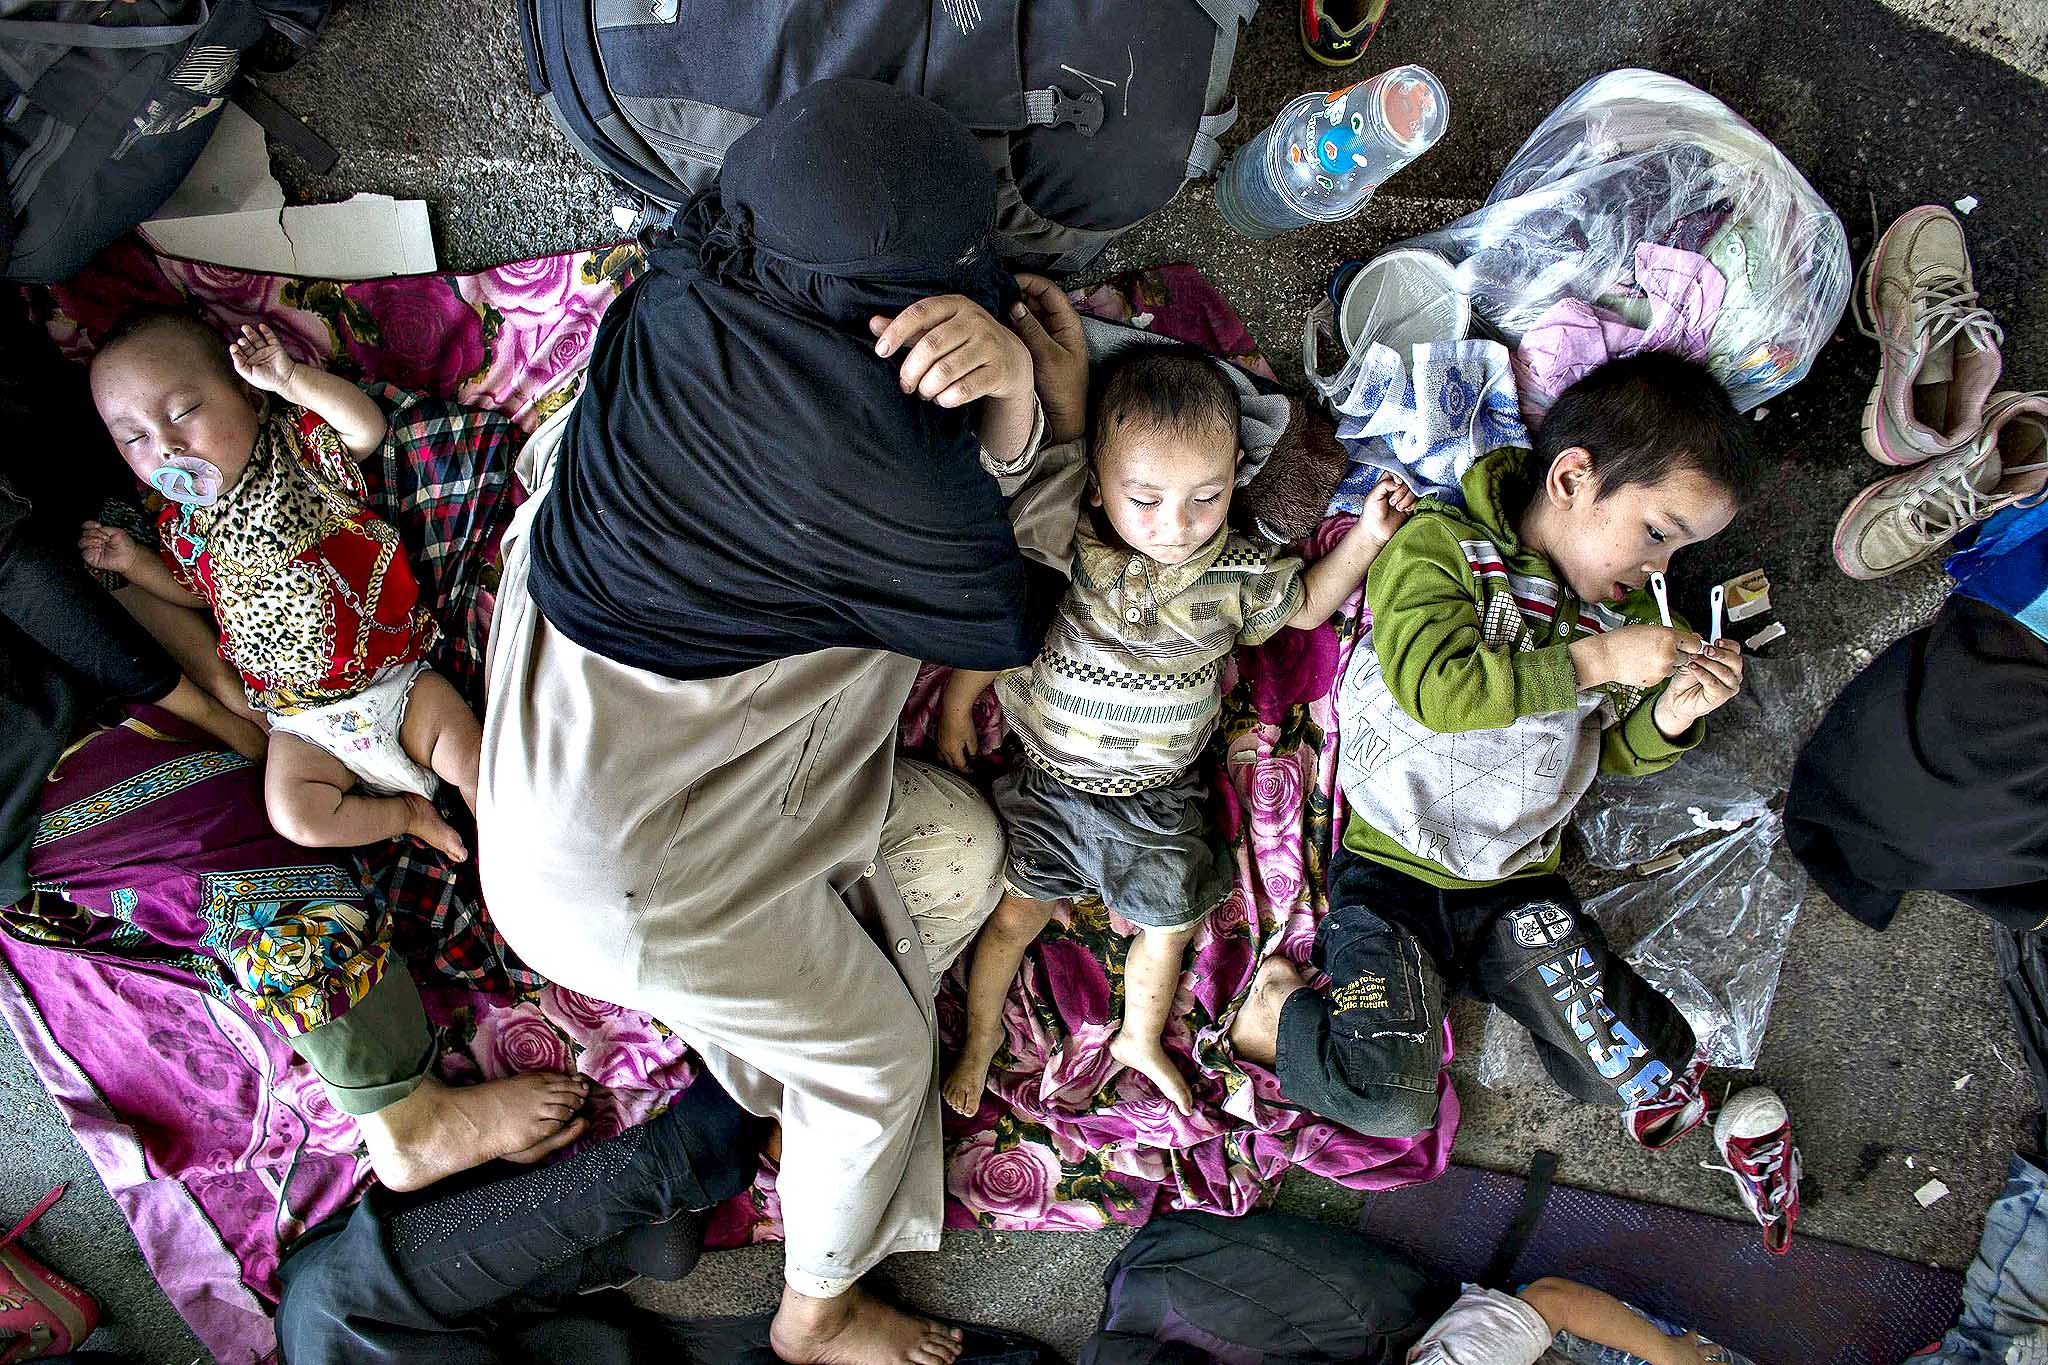 Suspected Uighurs from China's region of Xinjiang, rest inside a temporary shelter after they were detained at the immigration regional headquarters near Thailand-Malaysia border in Hatyai...Suspected Uighurs from China's troubled far-western region of Xinjiang, rest inside a temporary shelter after they were detained at the immigration regional headquarters near Thailand-Malaysia border in Hatyai, Songkla March 14, 2014. About 200 people rescued by police from a human smuggling camp in southern Thailand on Wednesday are suspected Uighur Muslims from China's troubled far-western region of Xinjiang, say Thai police.